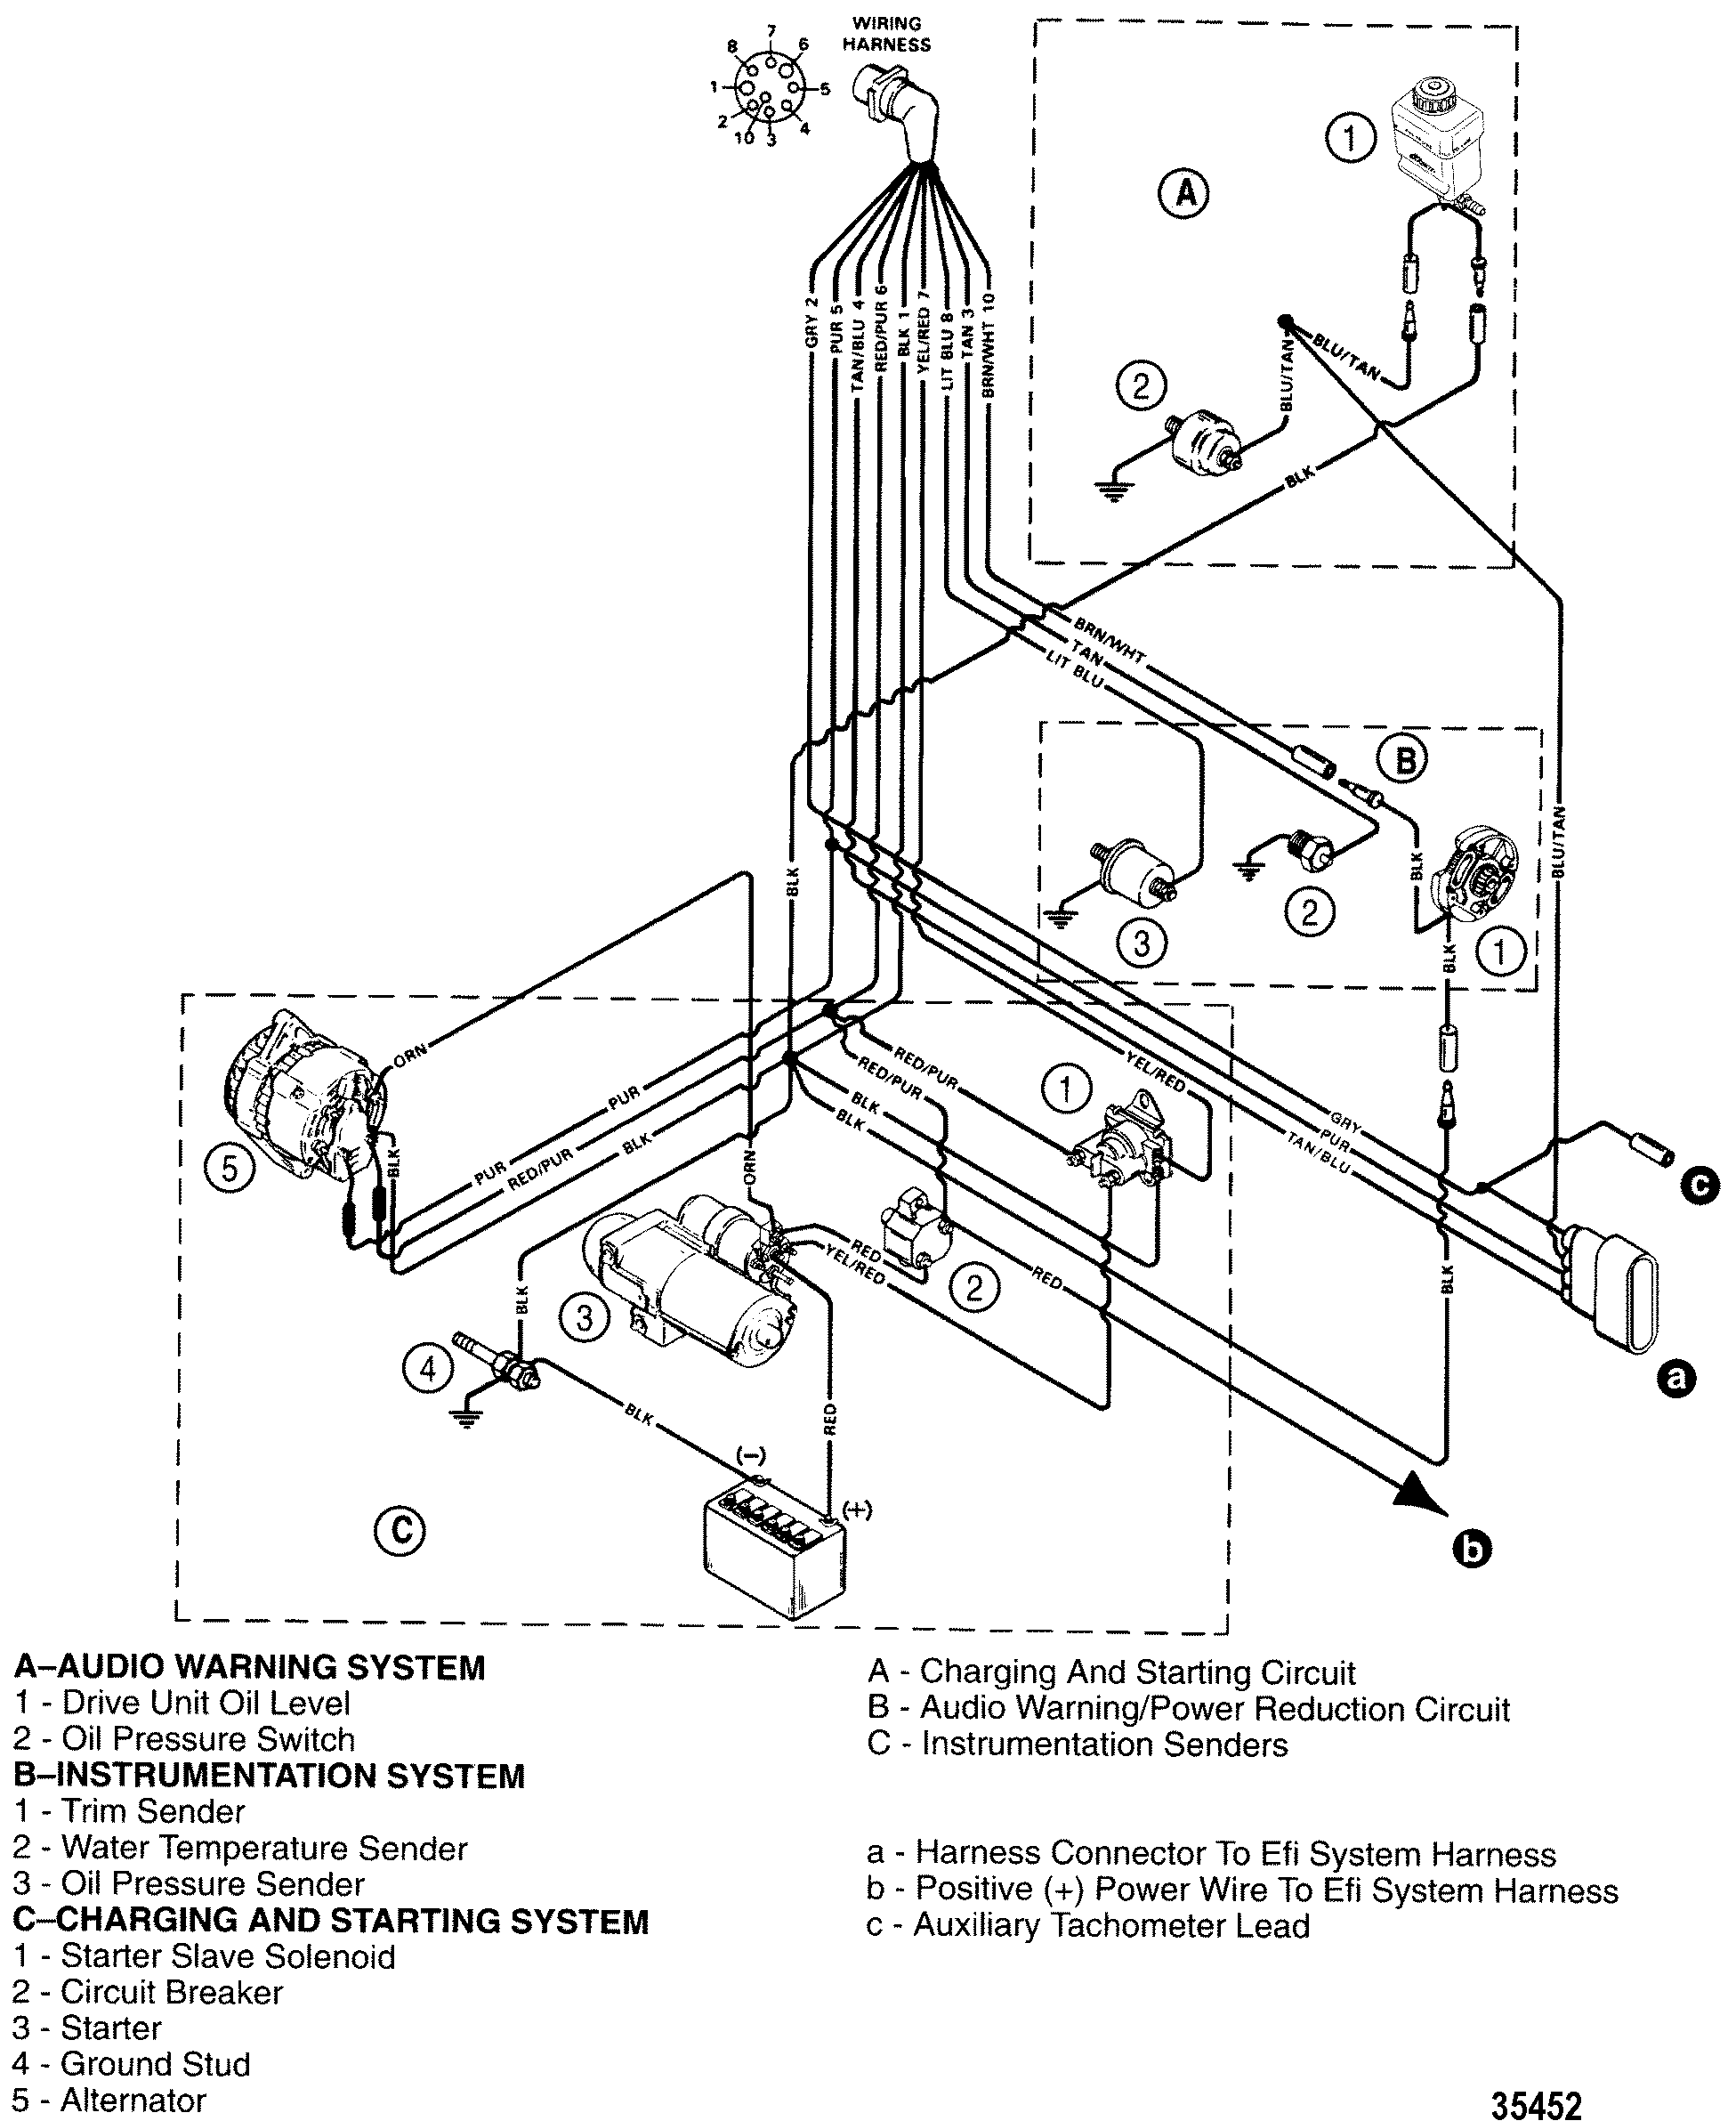 Engine Wiring Diagram For A 3412 Fire Pump Engine